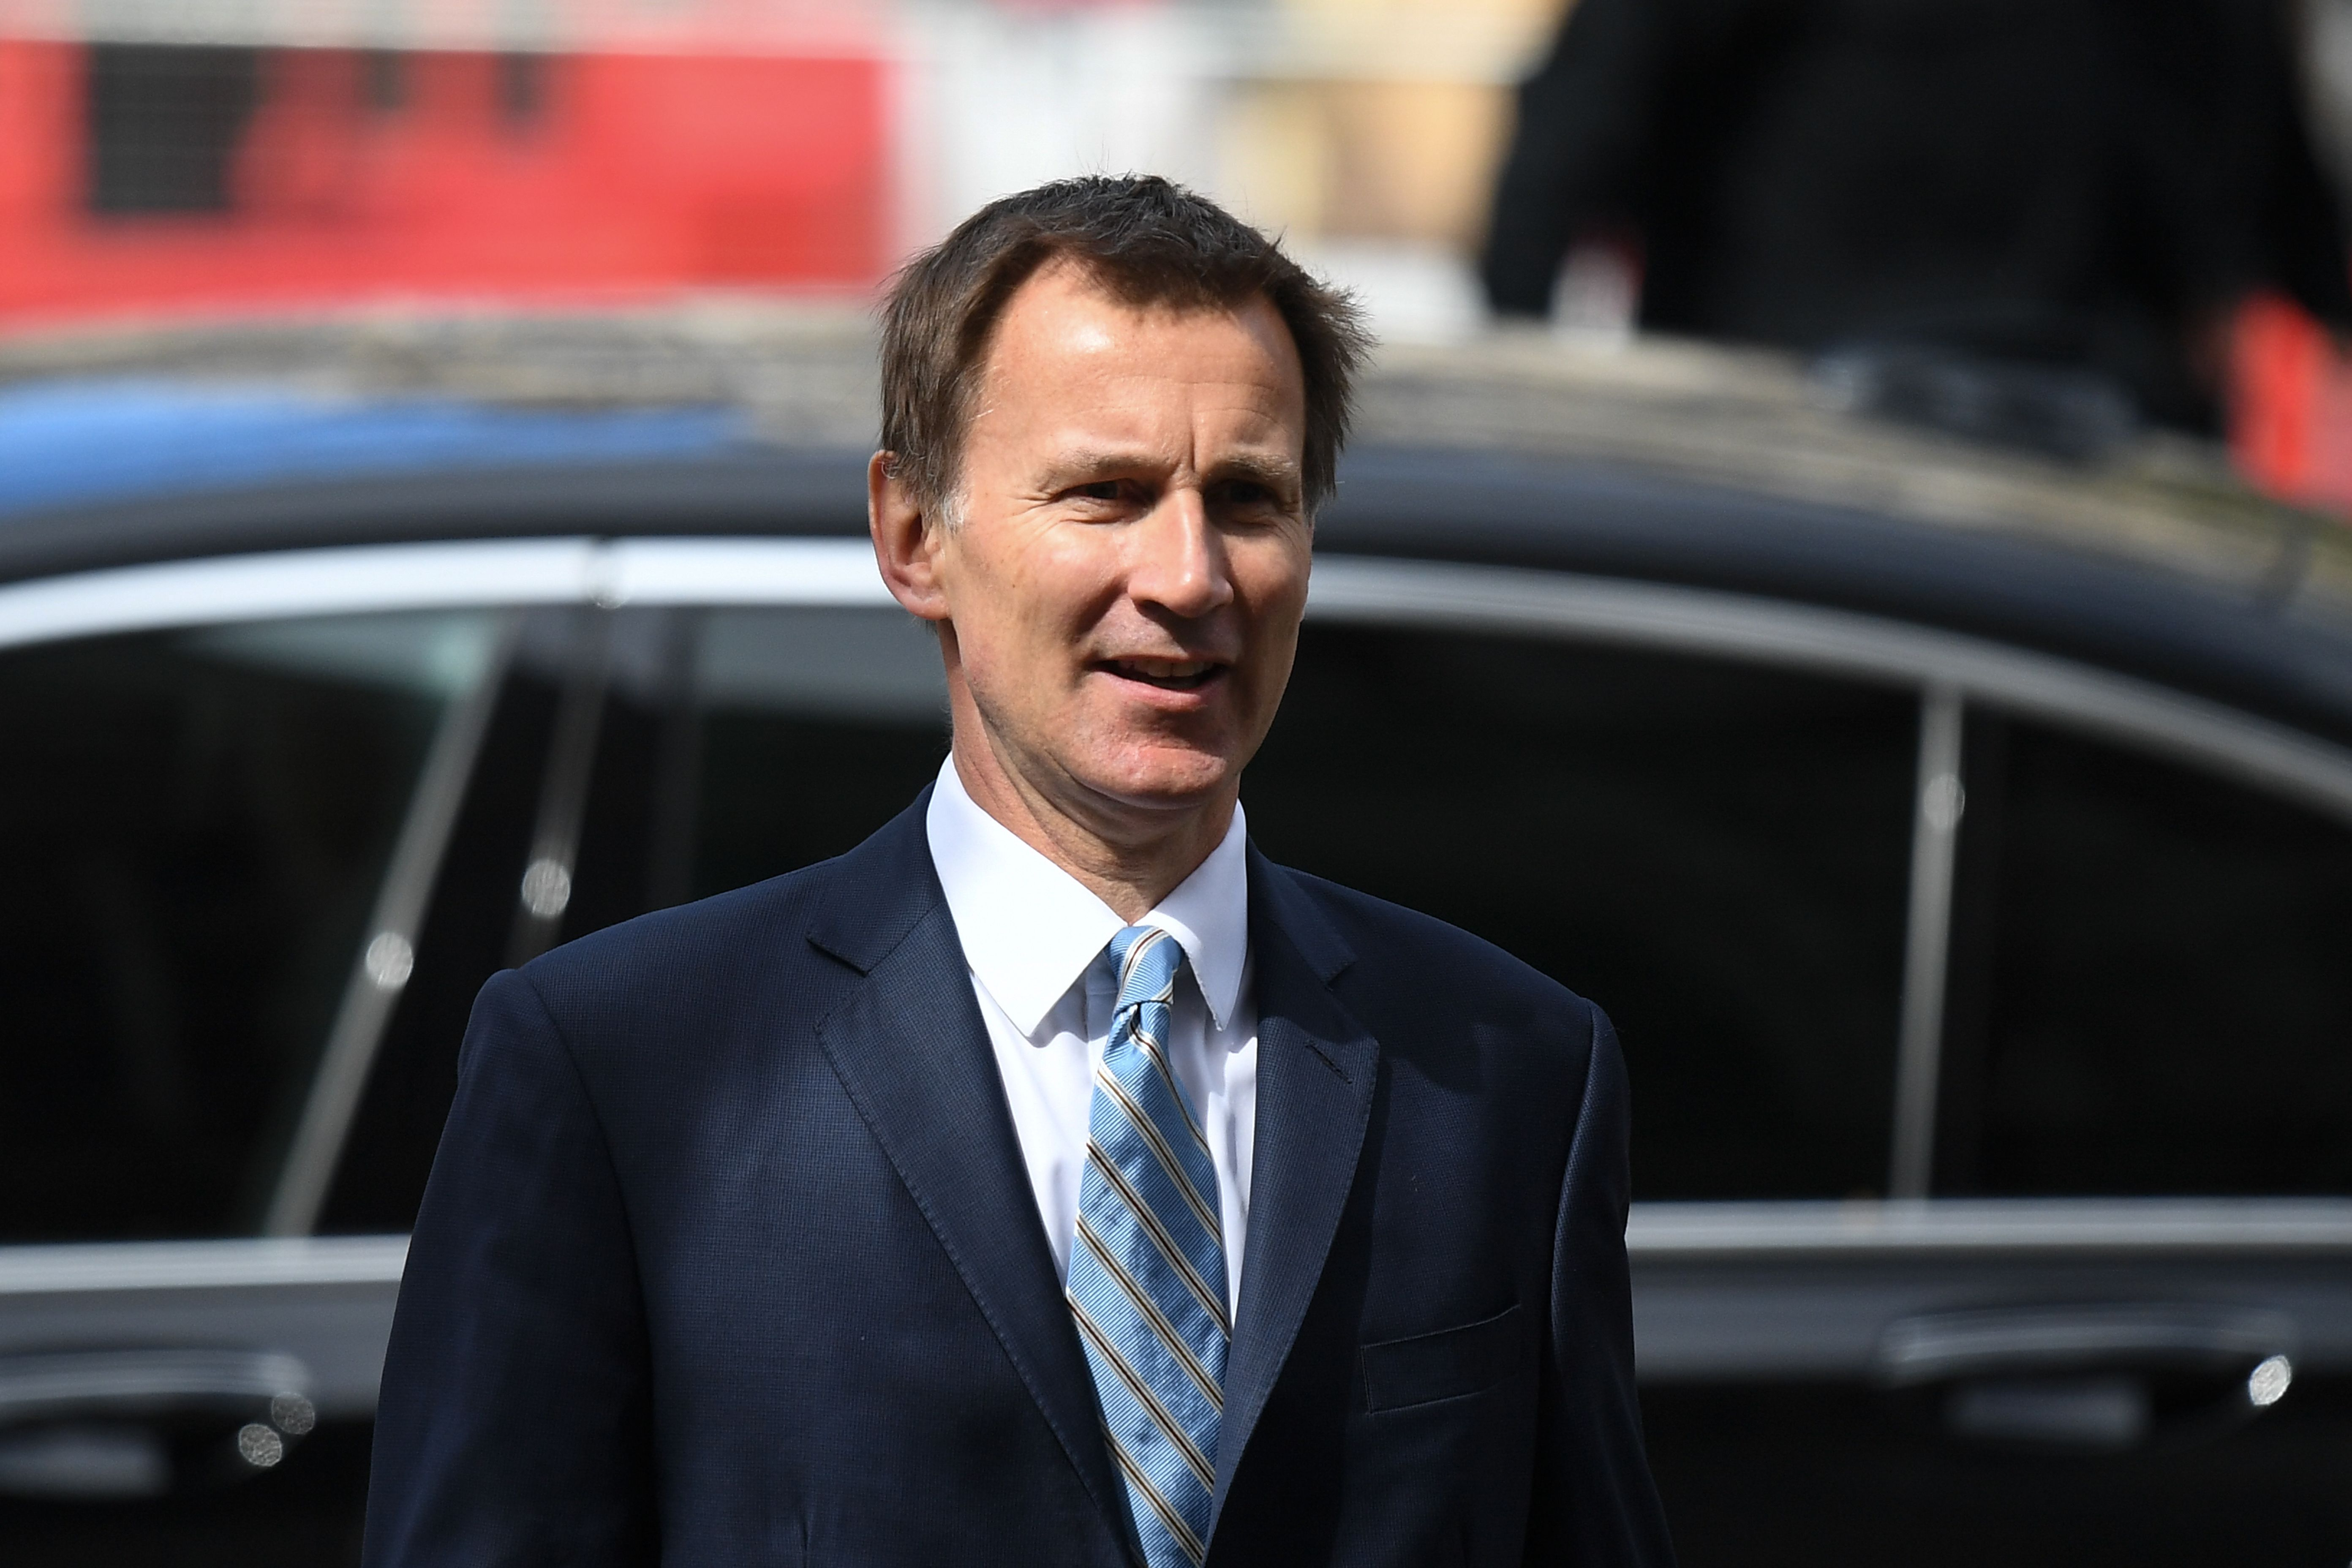 Britain's Foreign Secretary Jeremy Hunt arrives to attend a service of commemoration and thanksgiving to mark Anzac Day in Westminster Abbey in London on April 25, 2019. (DANIEL LEAL-OLIVAS/AFP/Getty Images)